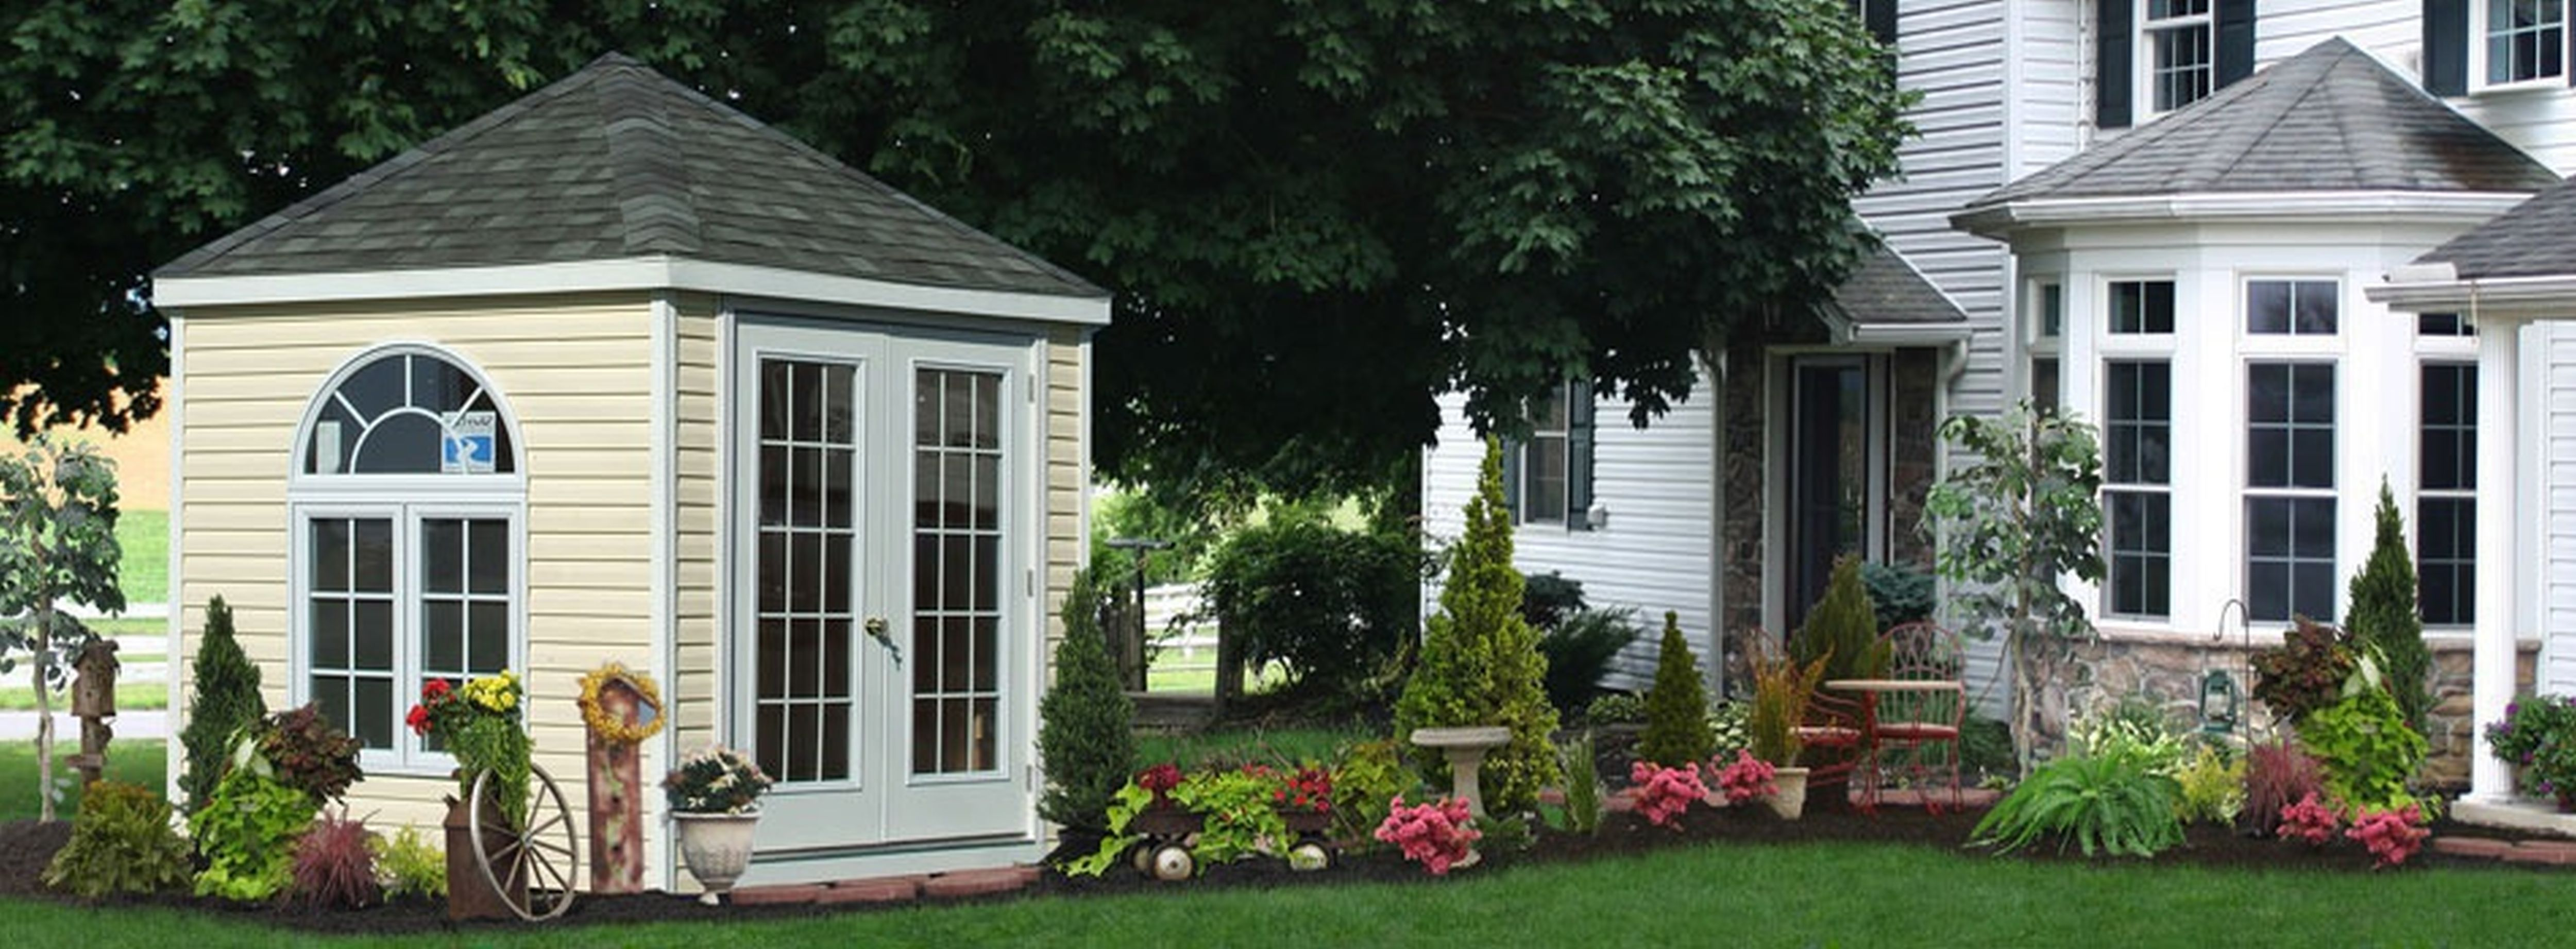 Backyard Landscaping Design Ideas-Charming Cottages and Sheds on parking shed ideas, small bar shed ideas, small backyard storage sheds, small garden shed plans, small cabin shed ideas, small modern shed ideas, large backyard ideas, small backyard shed art, carport shed ideas, garage shed ideas, cheap backyard shed ideas, deck shed ideas, outdoor shed ideas, small wood shed ideas, cool backyard shed ideas, small storage building ideas, small office shed ideas, small potting shed ideas, cute backyard shed ideas, utility shed ideas,